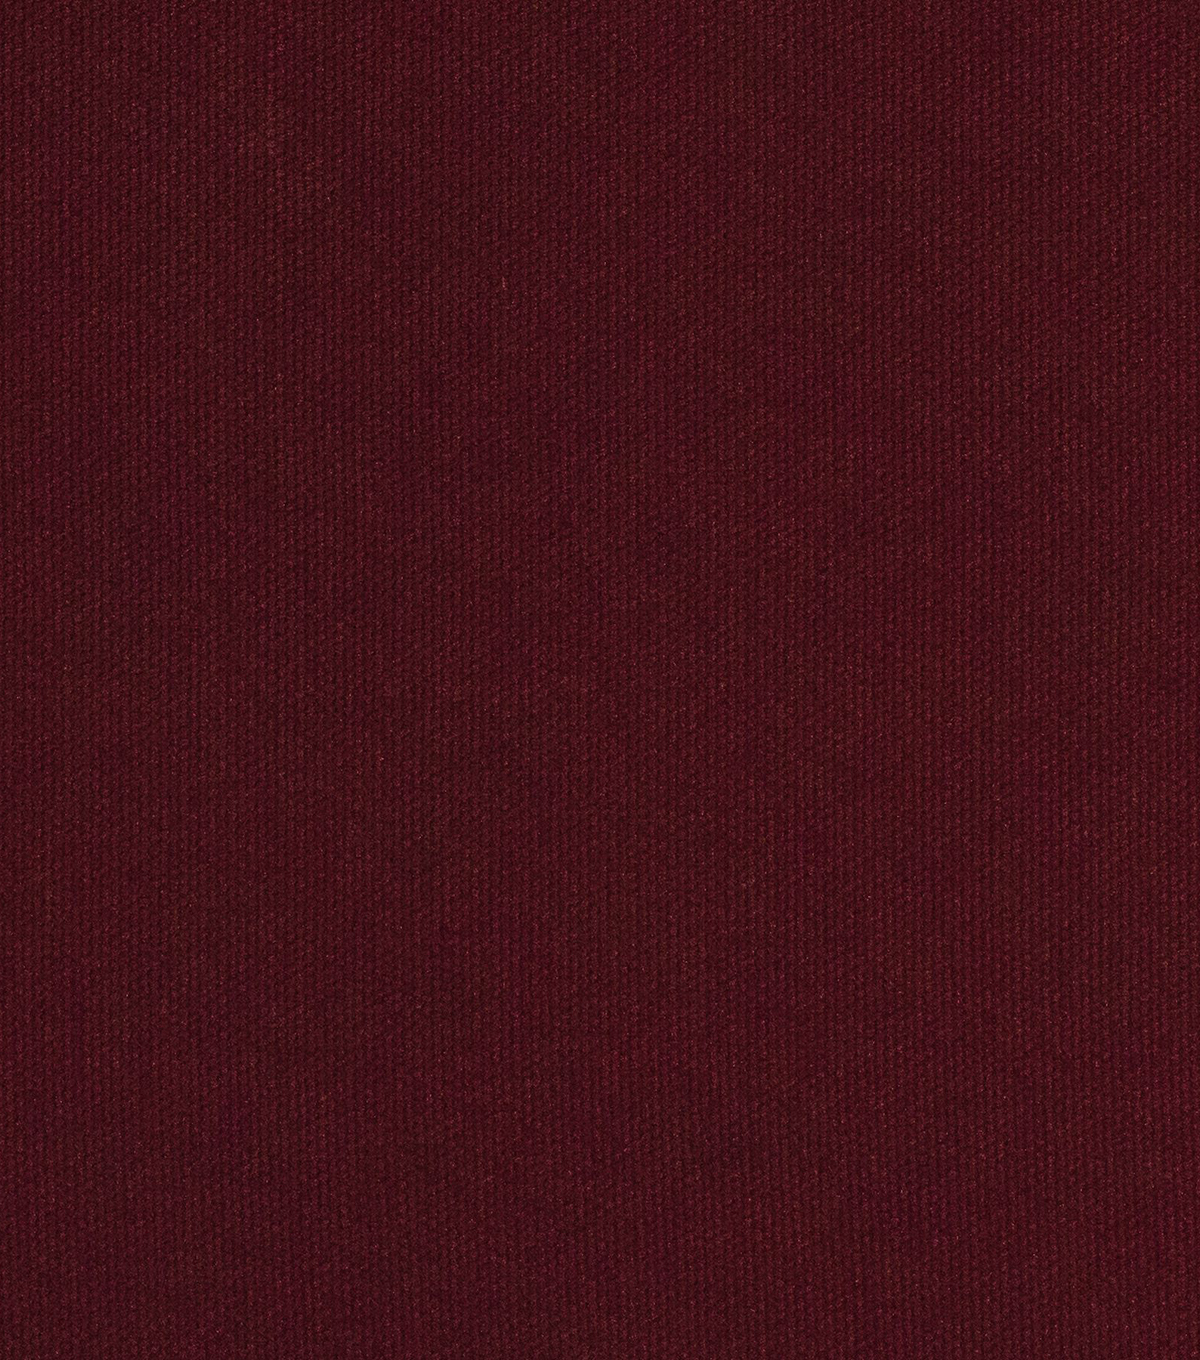 Home Decor 8\u0022x8\u0022 Fabric Swatch-Elite Orion Pecan